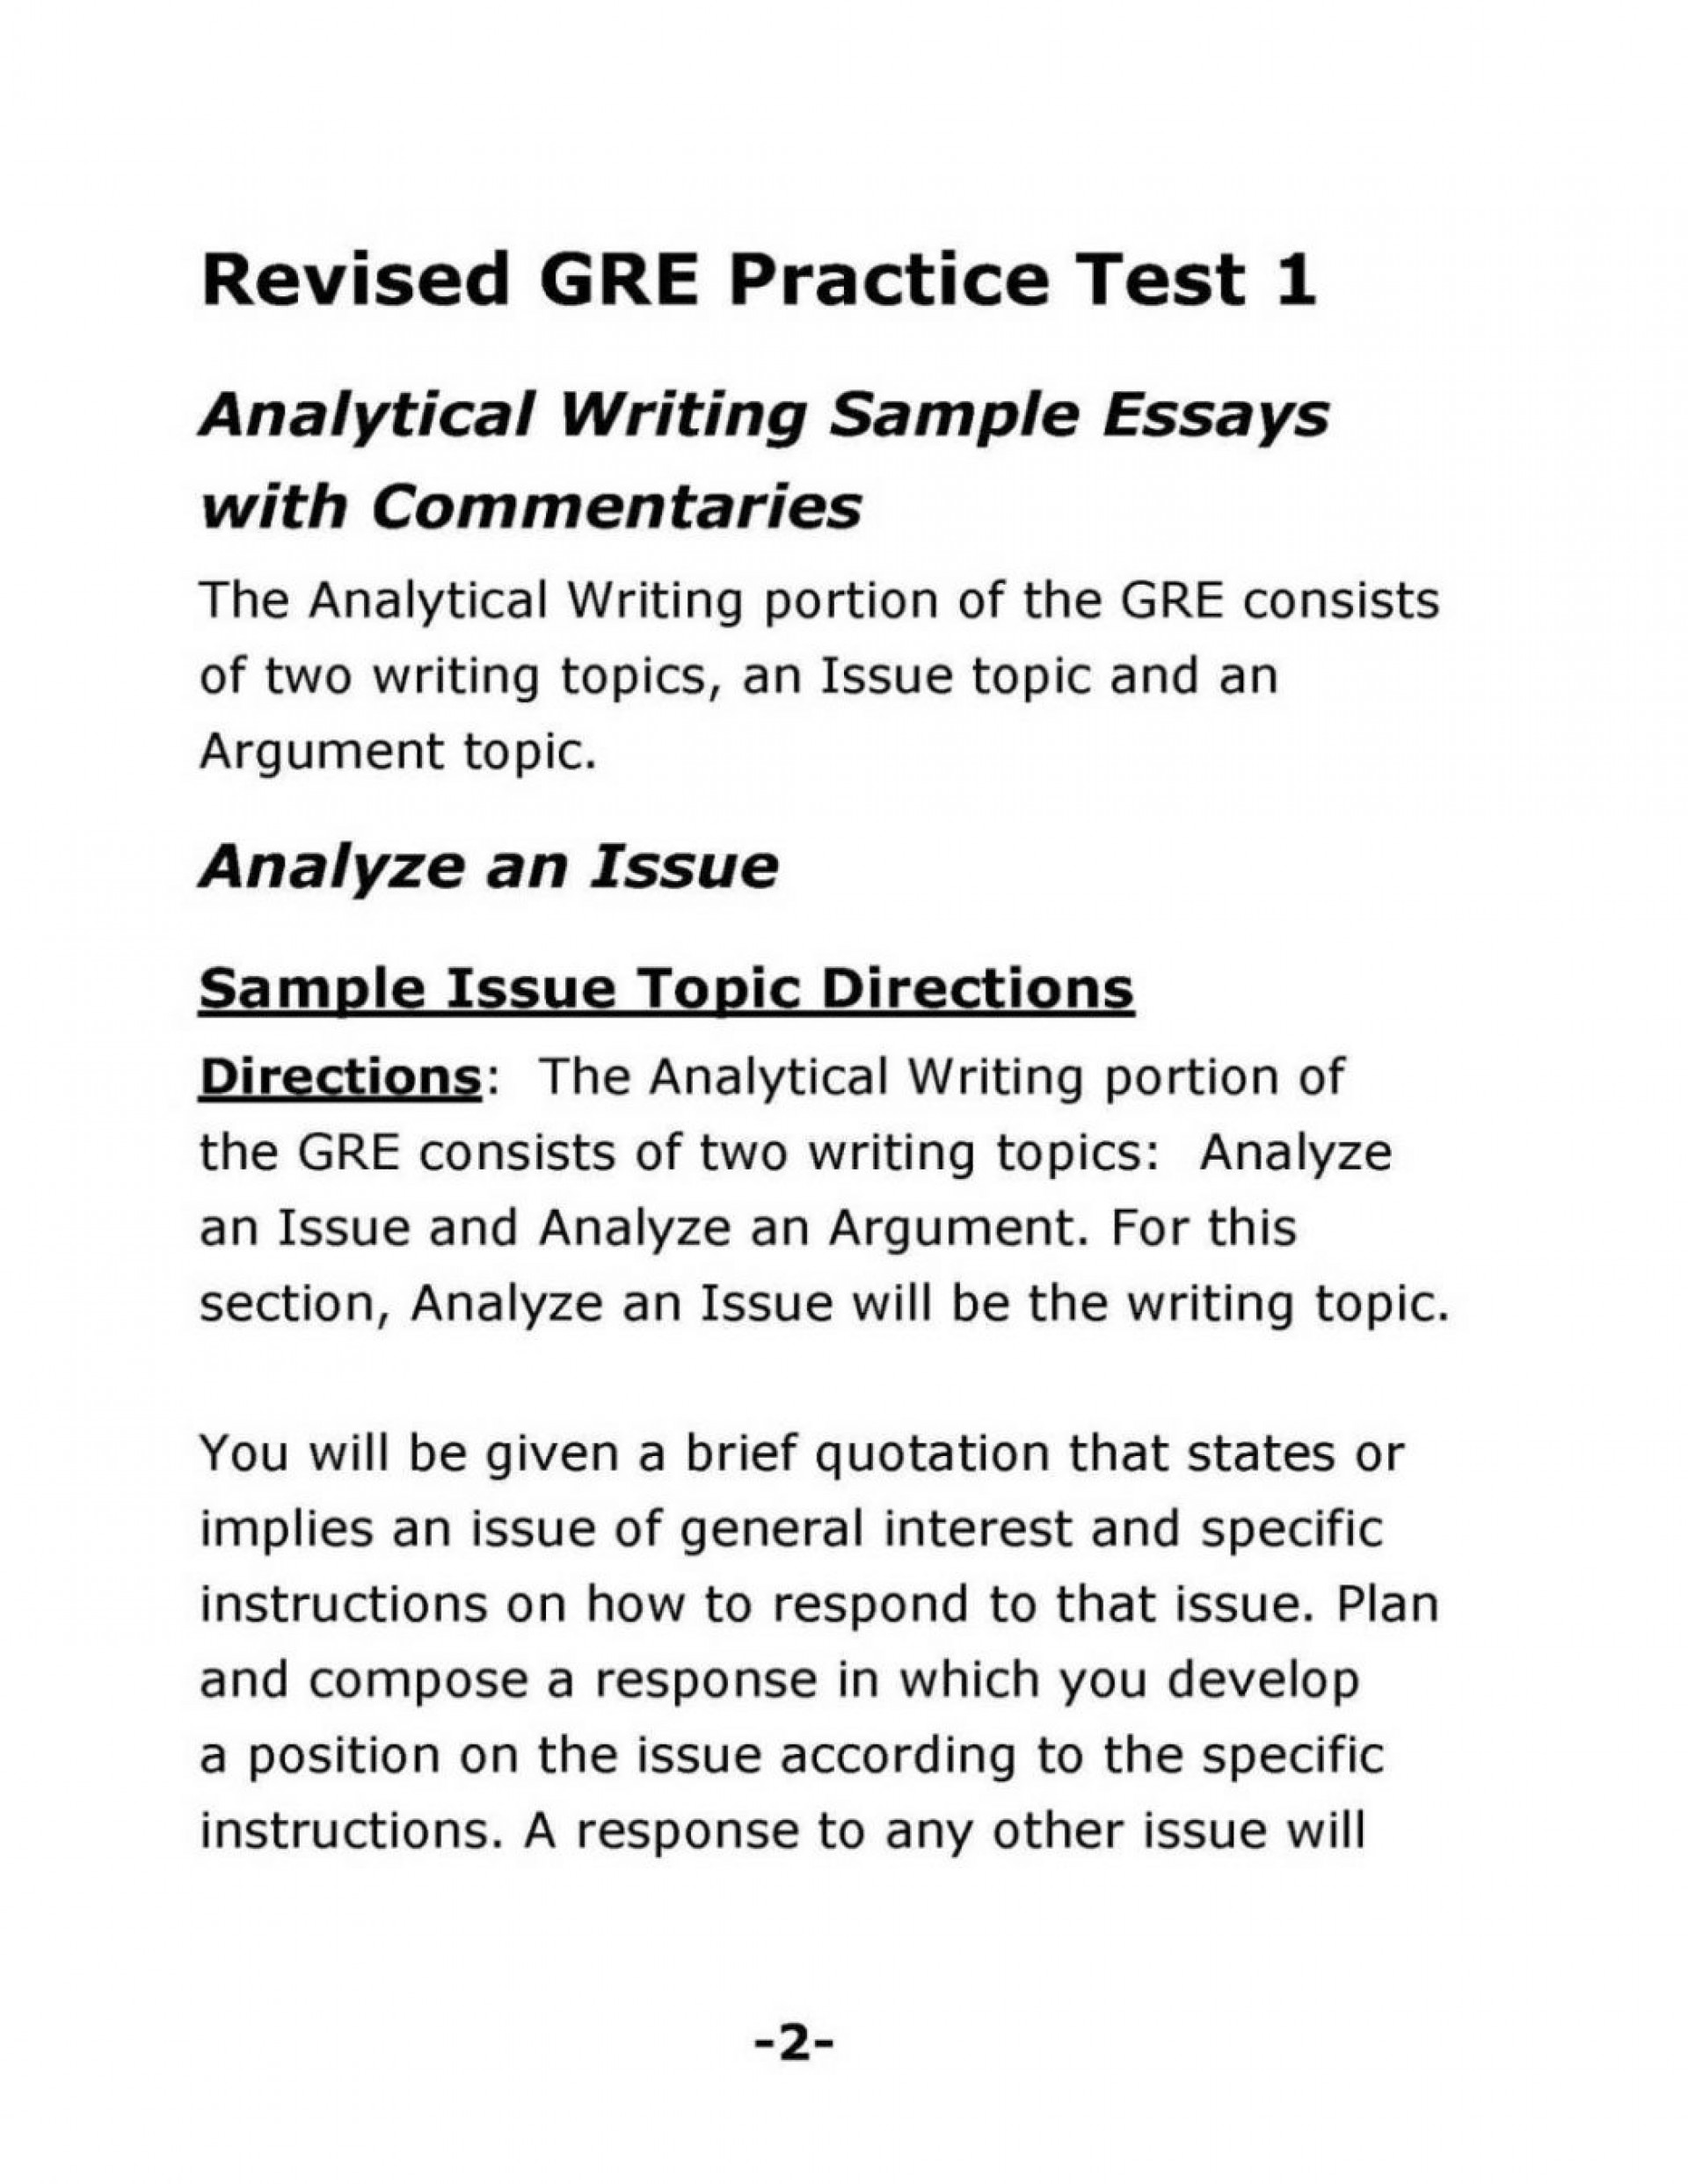 004 Gre Sample Essays Essay Example Issue Topics For Diversity Argumentative Writing Format Test Papers With Soluti Books Tips Preparation Pdf Practice Strategies Examples Formidable Awa Answers Prompts 1920